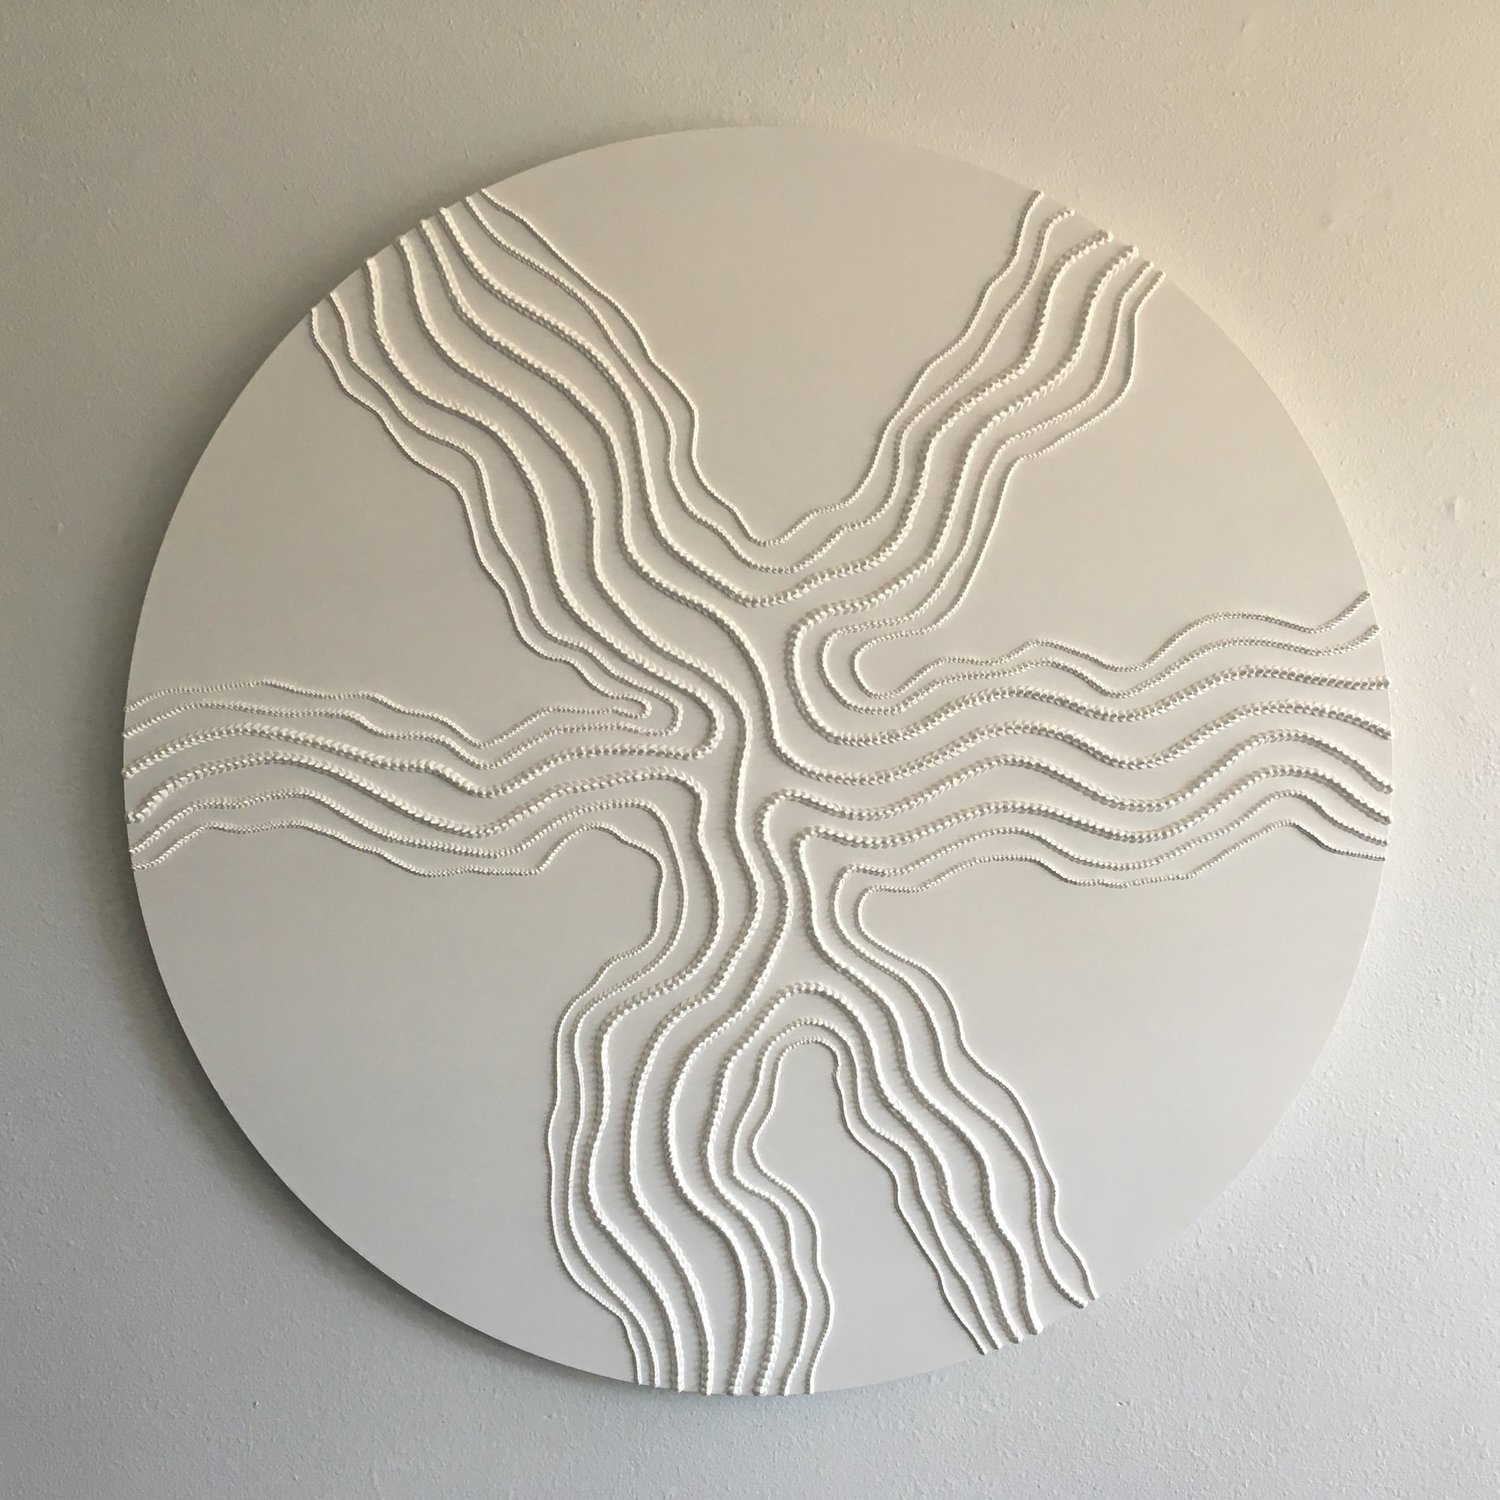 Peak , 2016, acrylic on wood, diameter: 48 inches  (inquire)